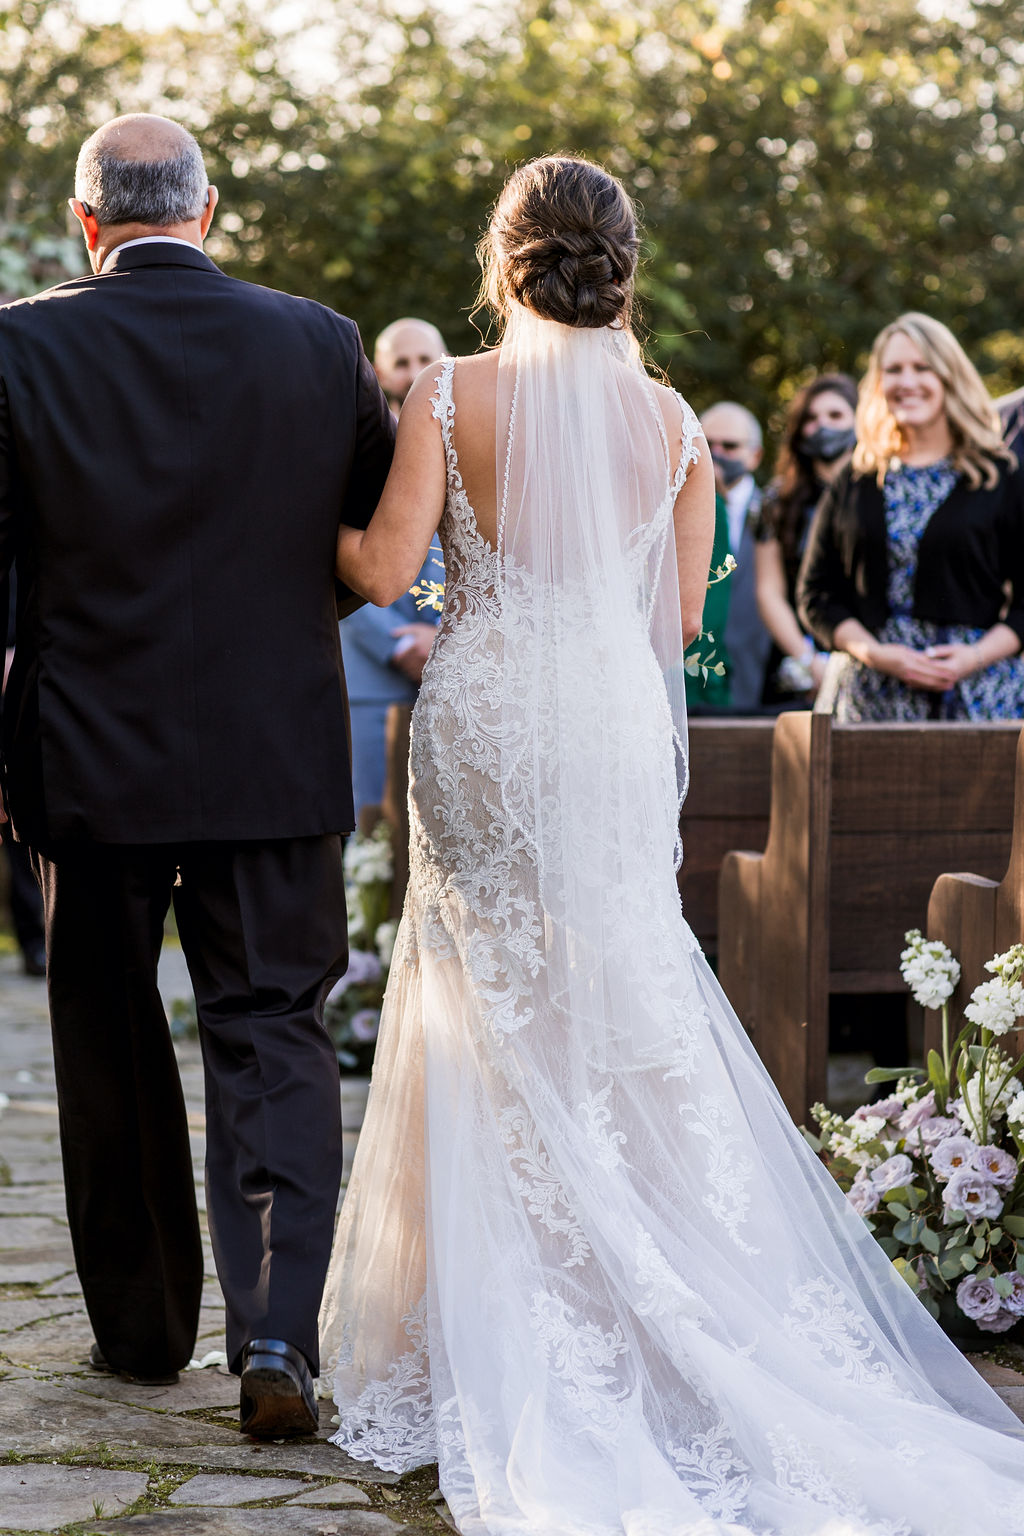 Father of the bride walking down the aisle | Nashville Bride Guide